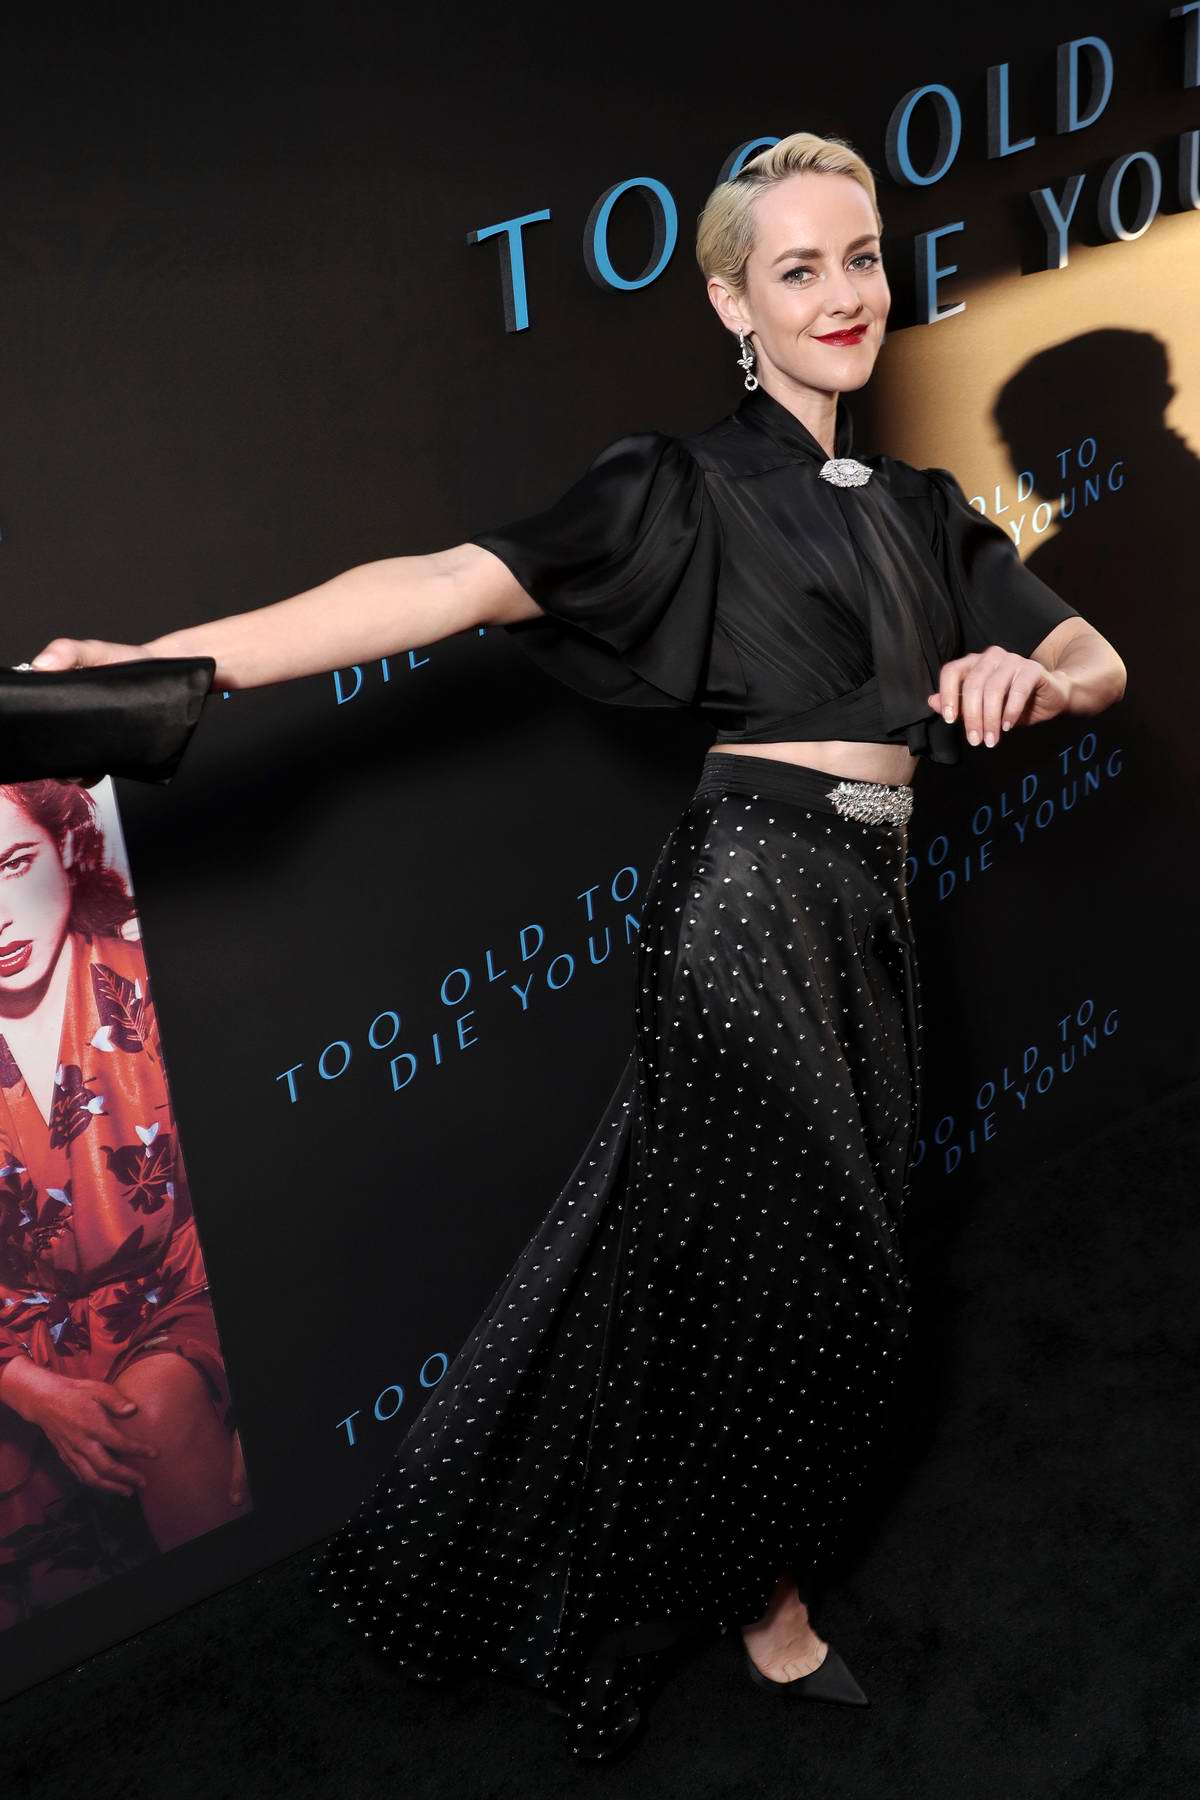 Jena Malone attends the special screening of 'Too Old To Die Young' in Los Angeles